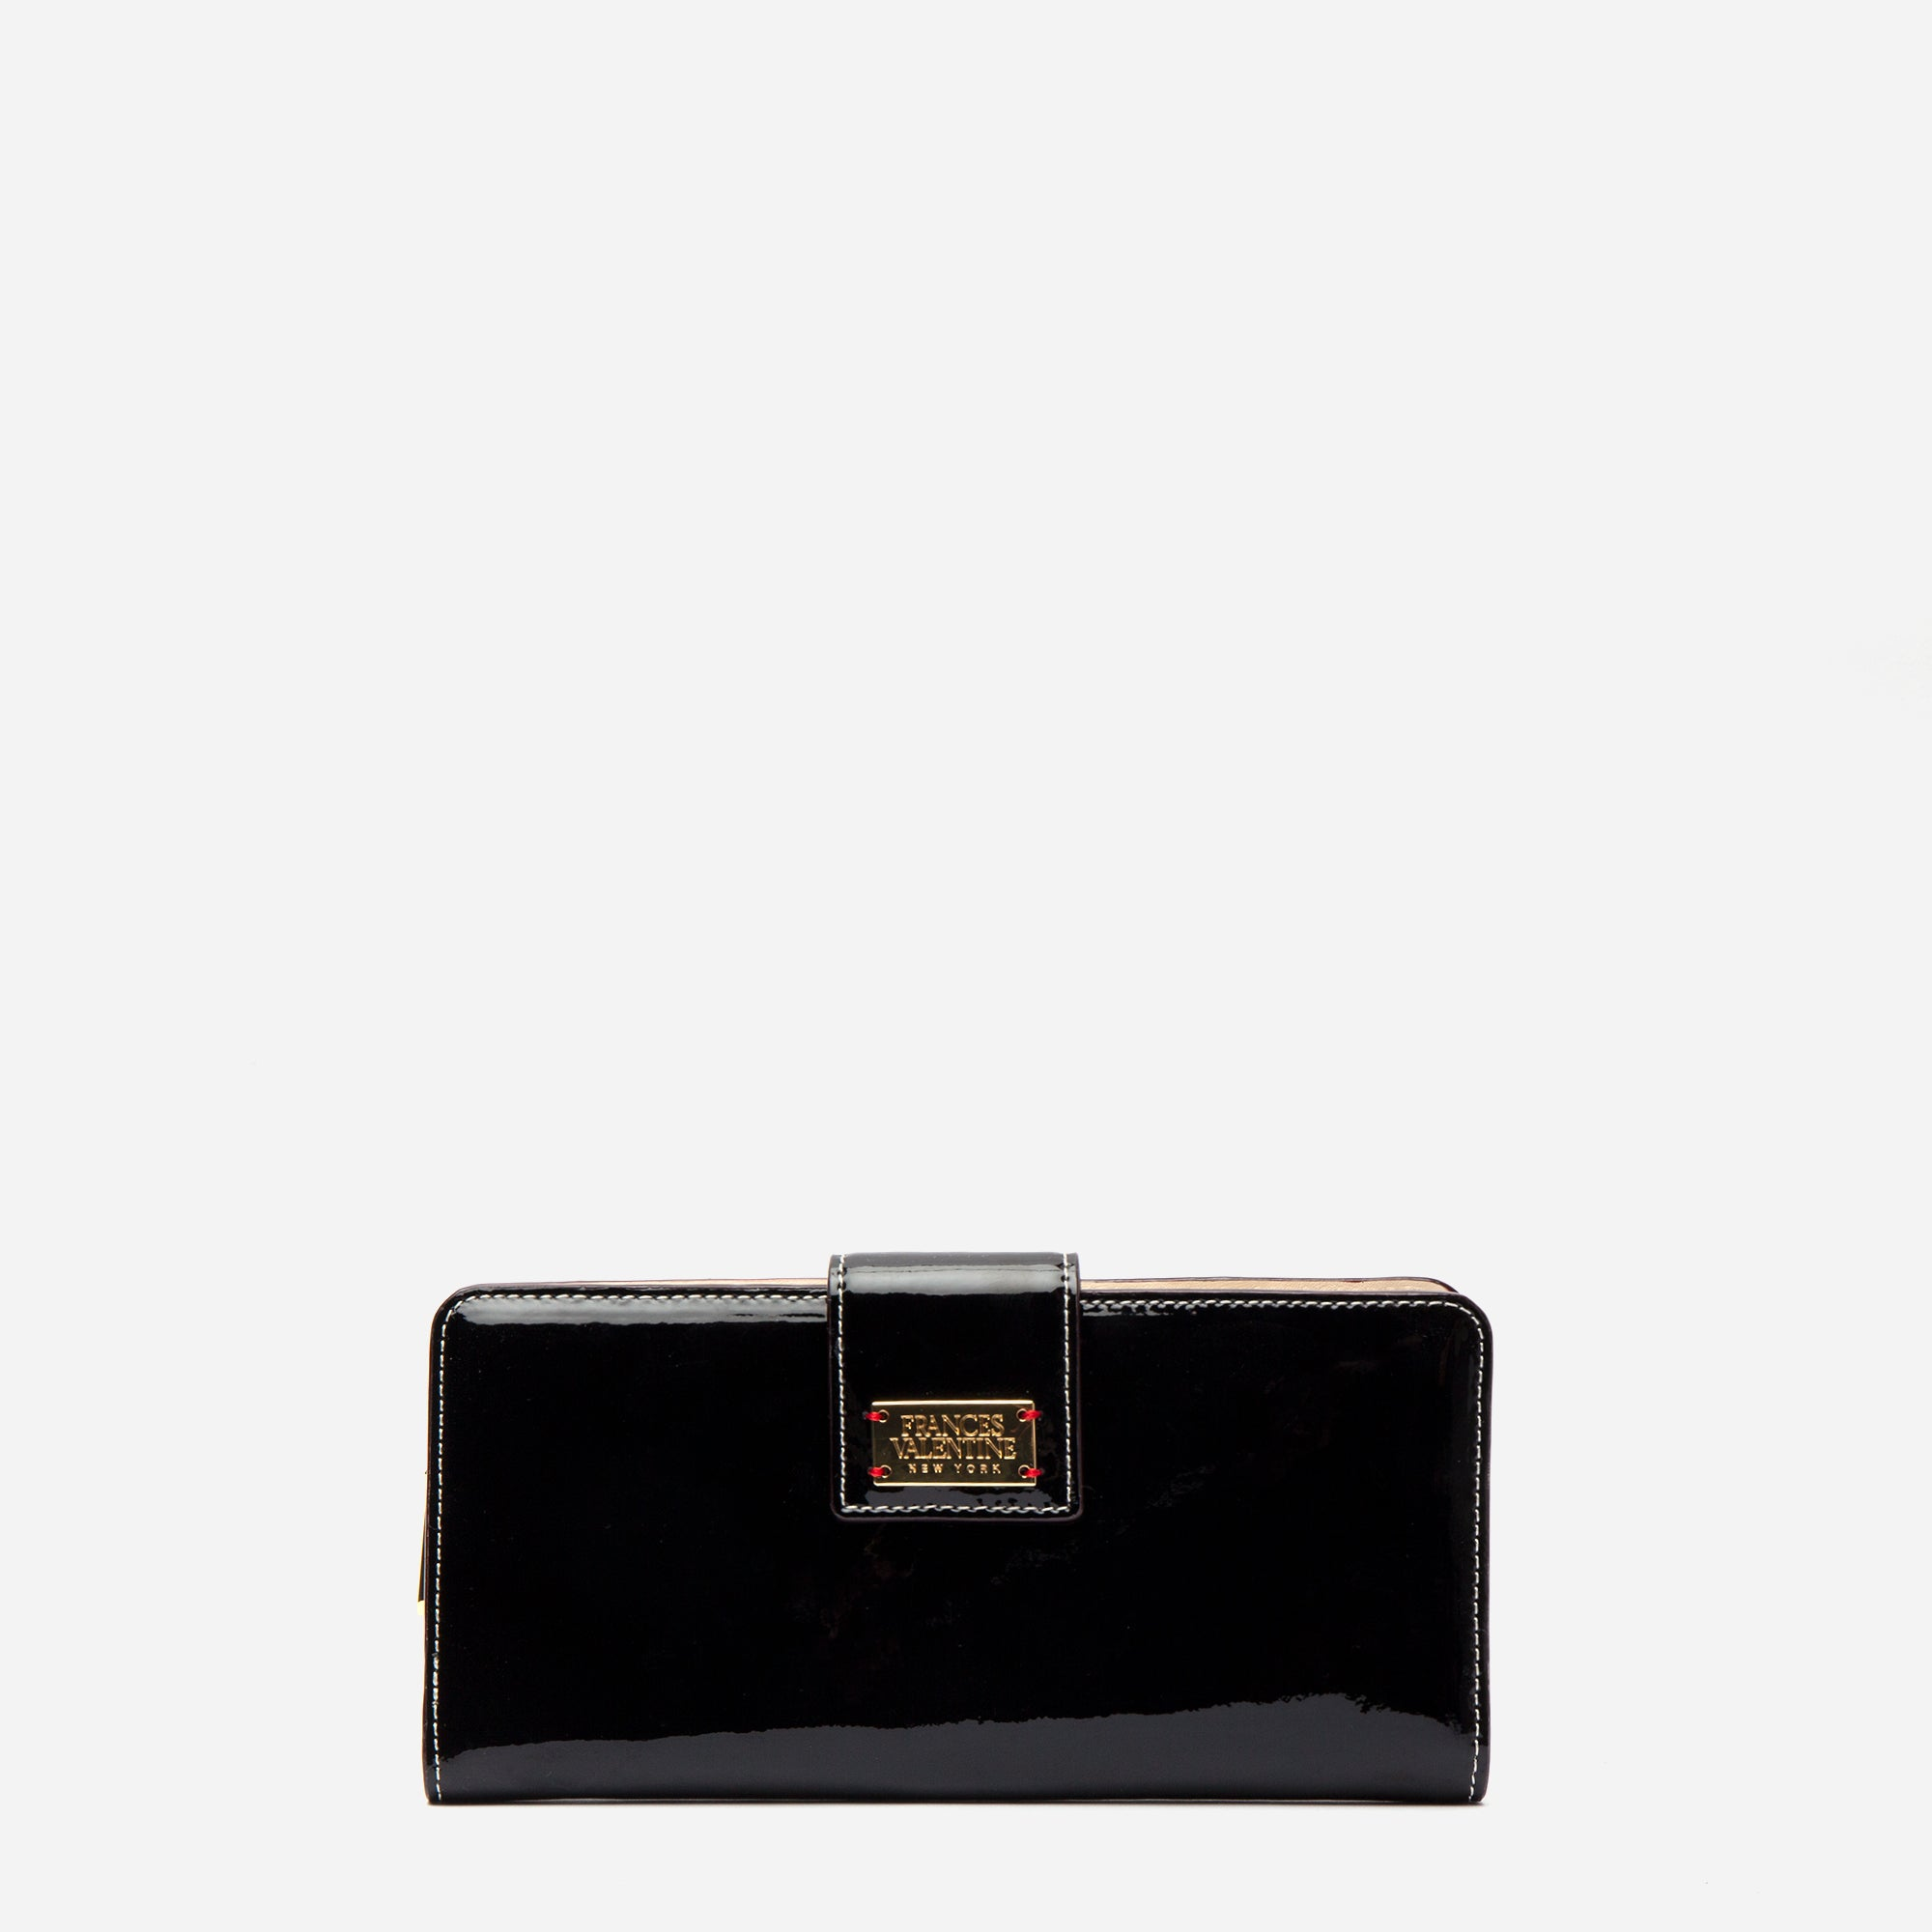 Jefferson Slim Wallet Soft Patent Black Oyster - Frances Valentine